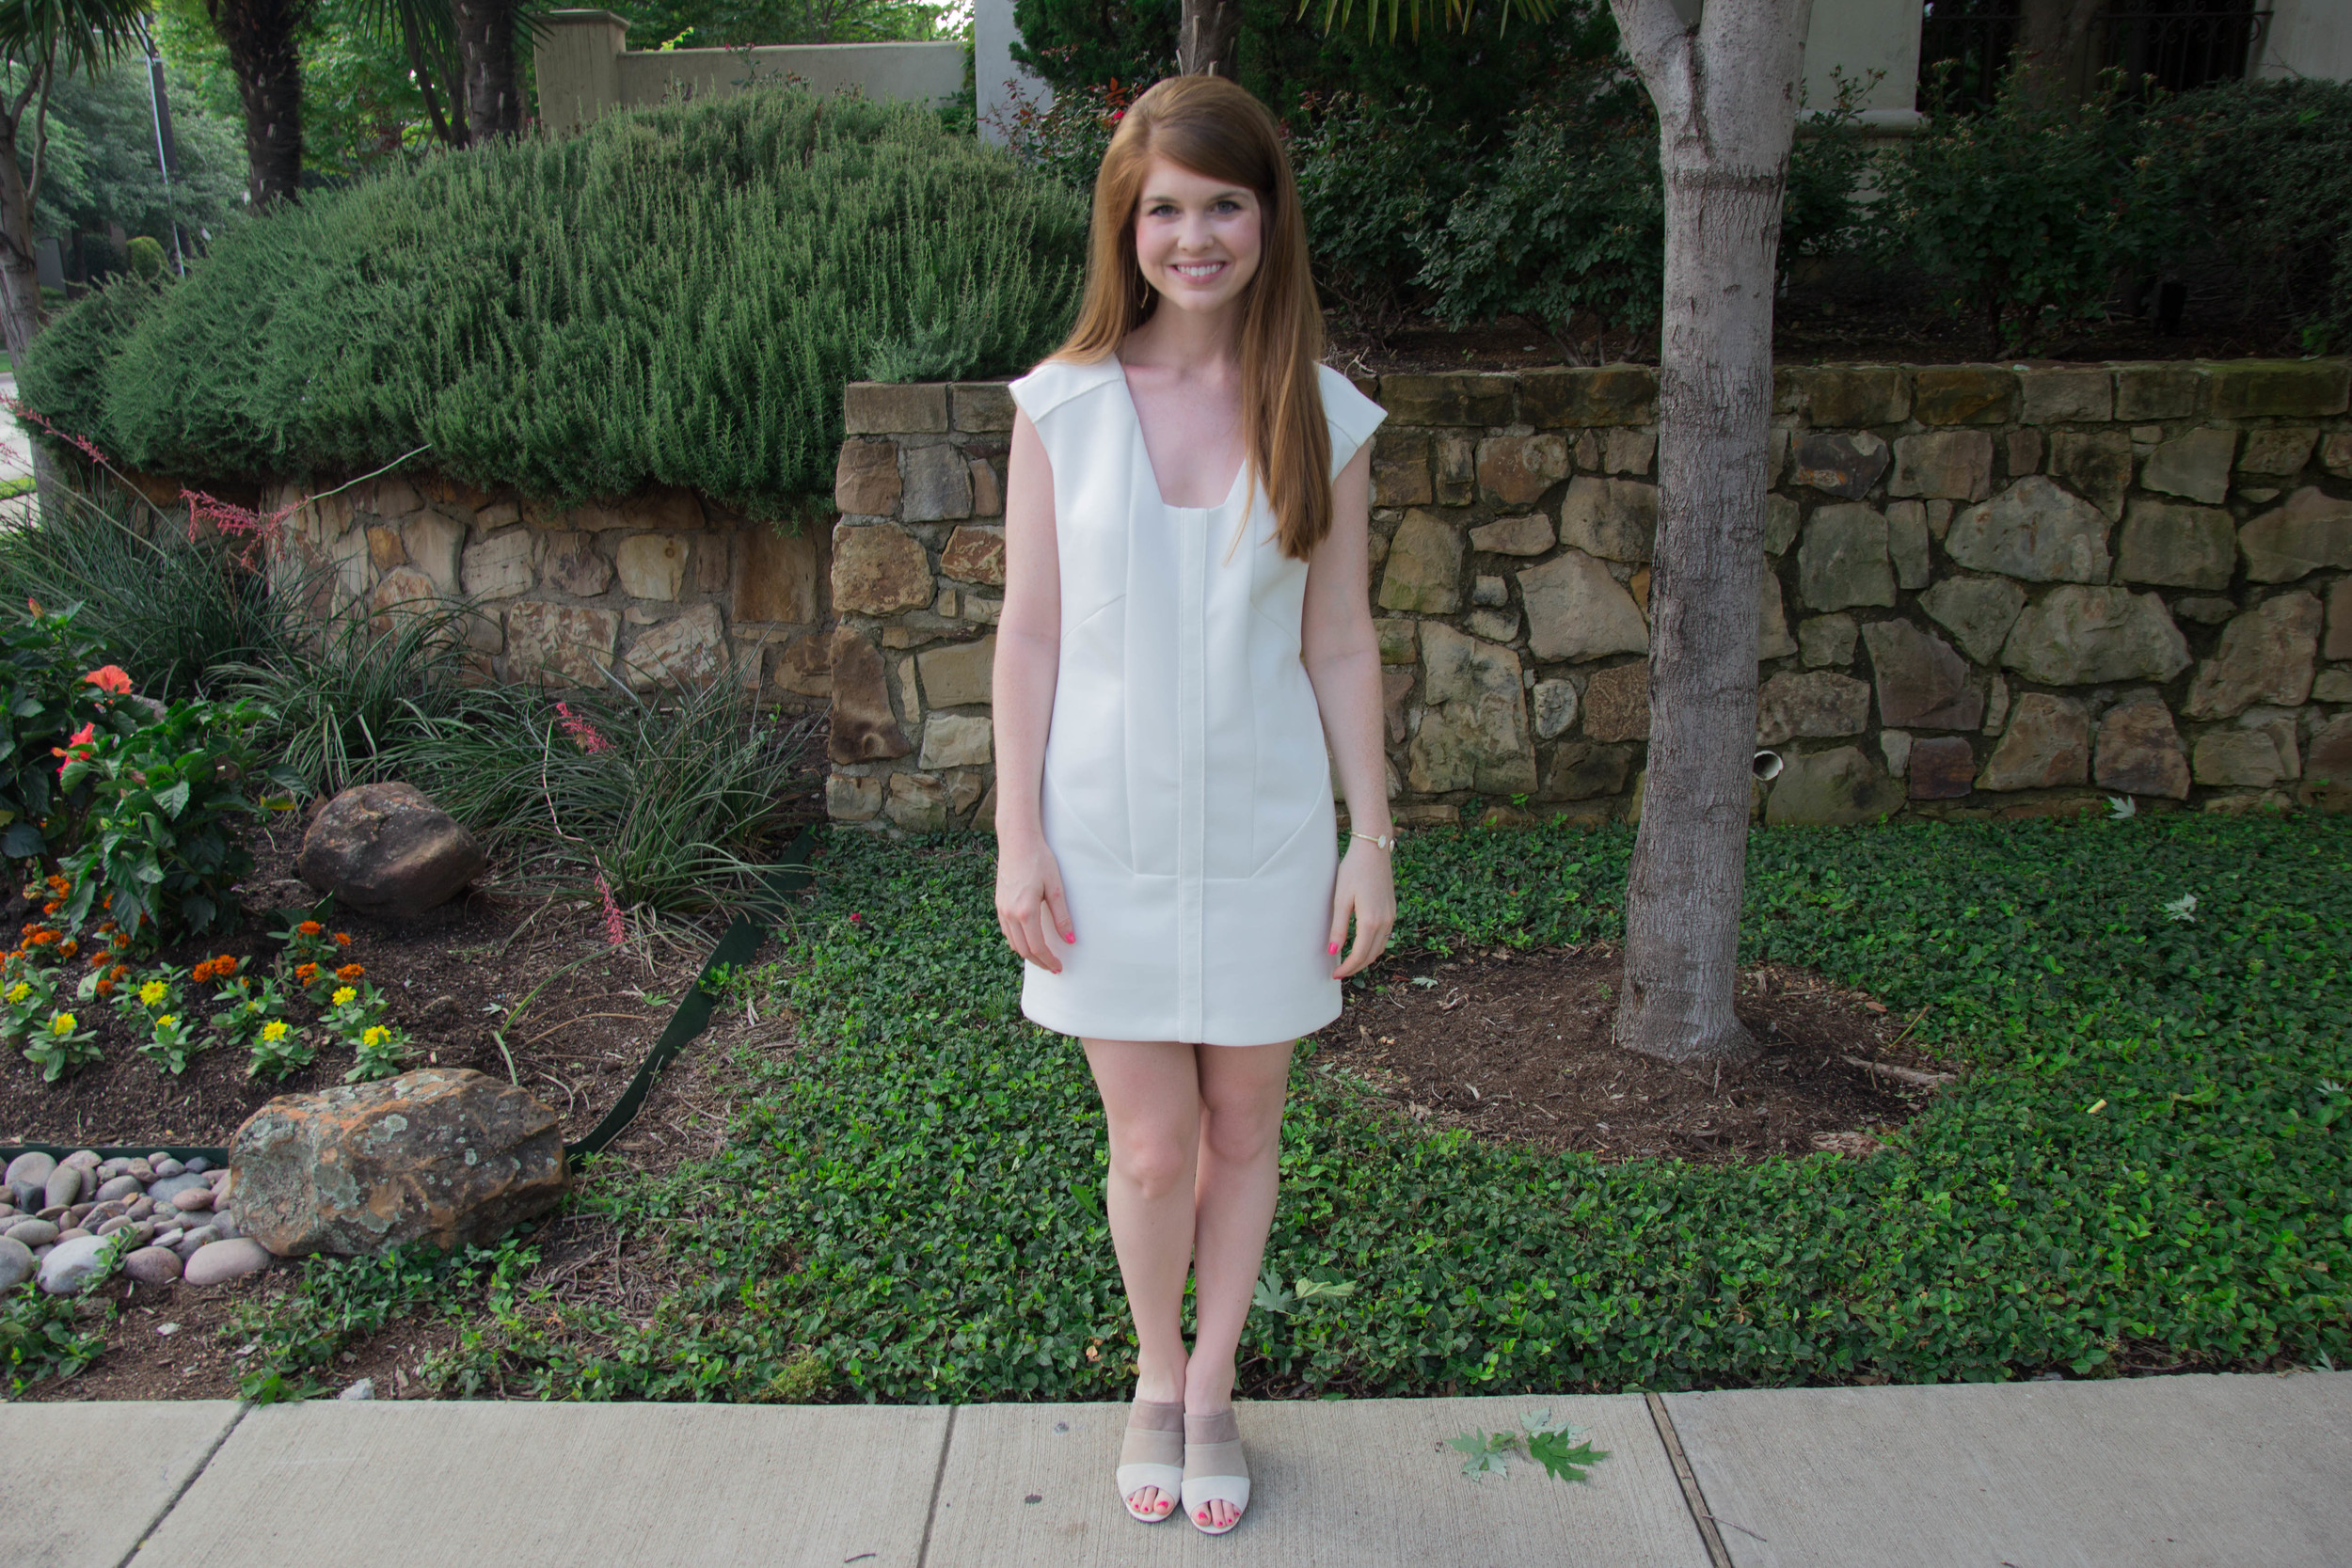 cultro dumbo white dress, scuba dress, how to wear white when you're pale, hush puppies suede slides, kendra scott druzy cuff